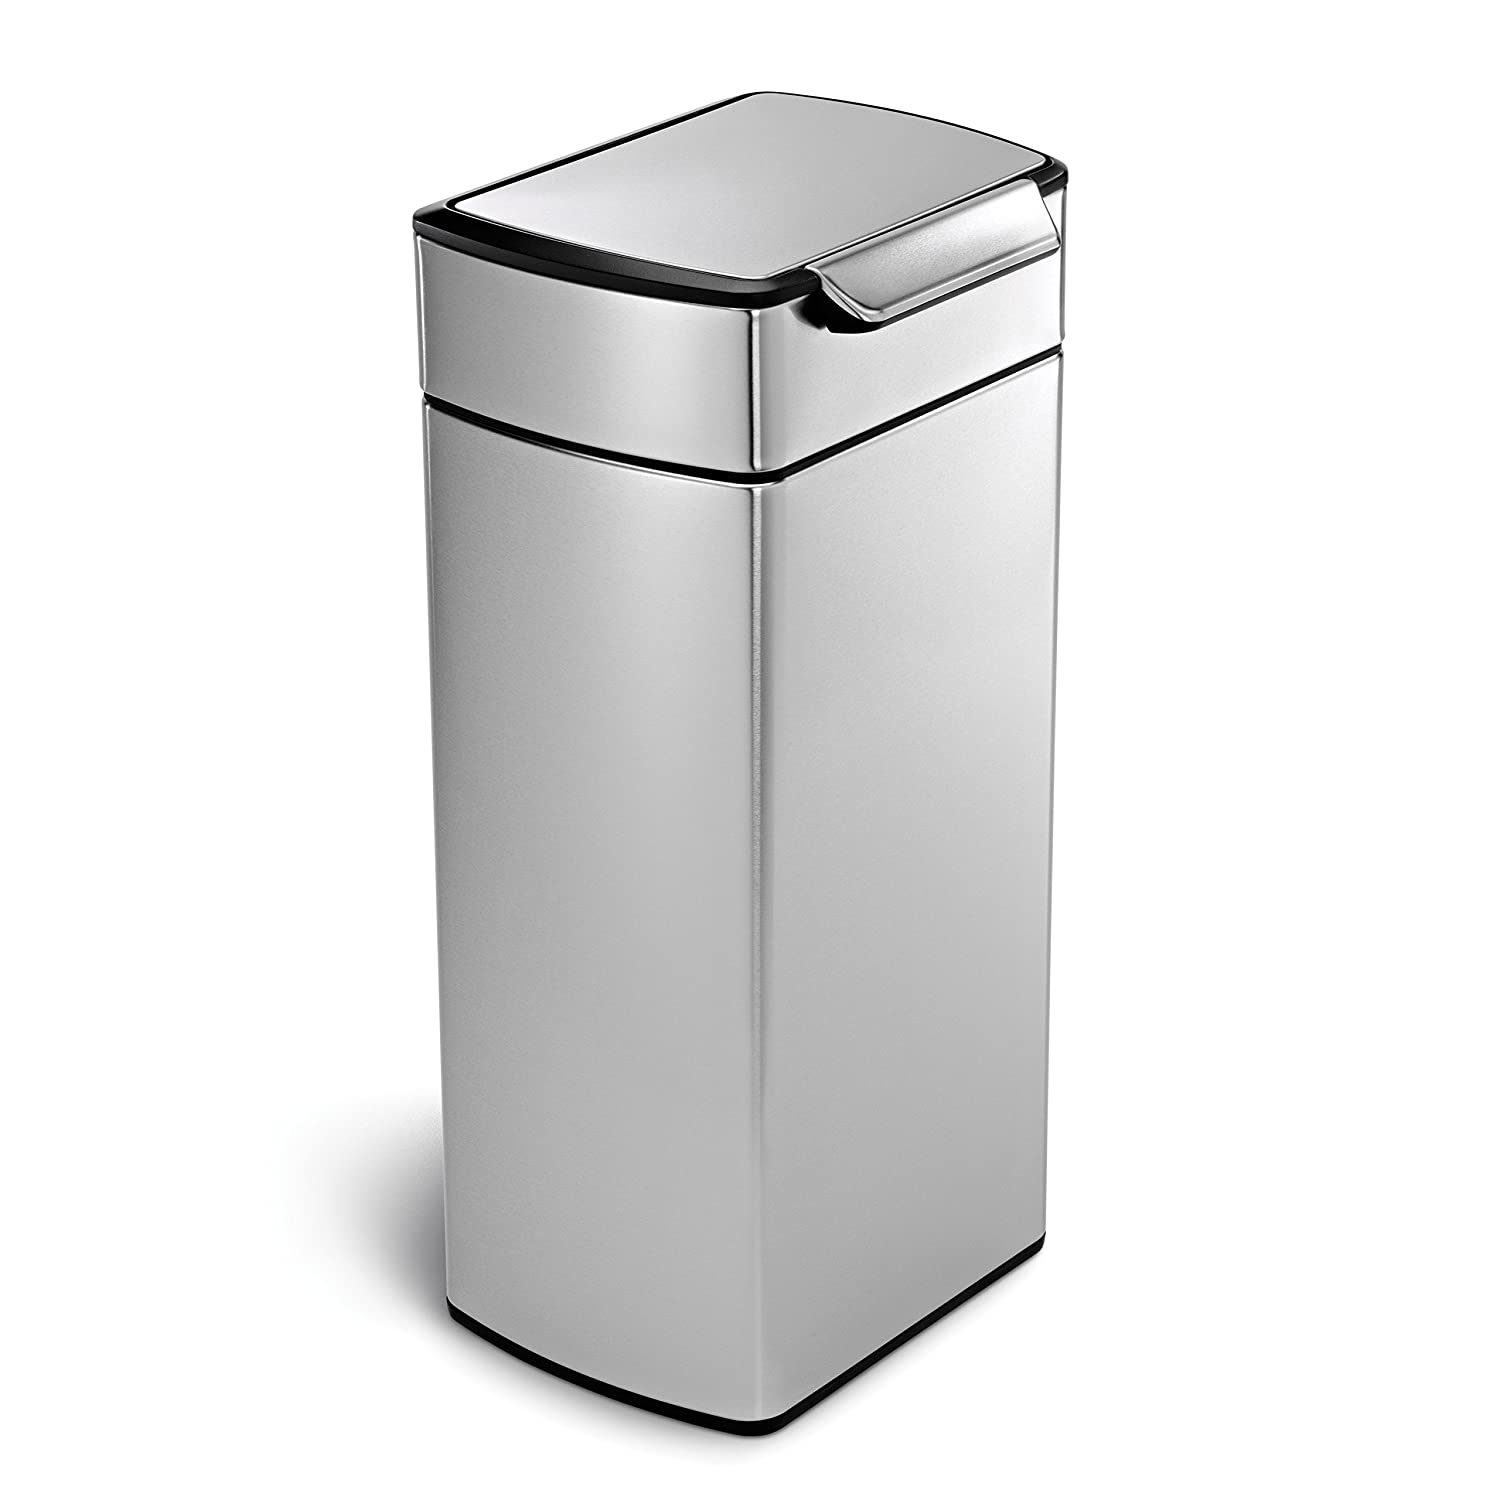 Amazon simplehuman Rectangular Touch Bar Trash Can Stainless